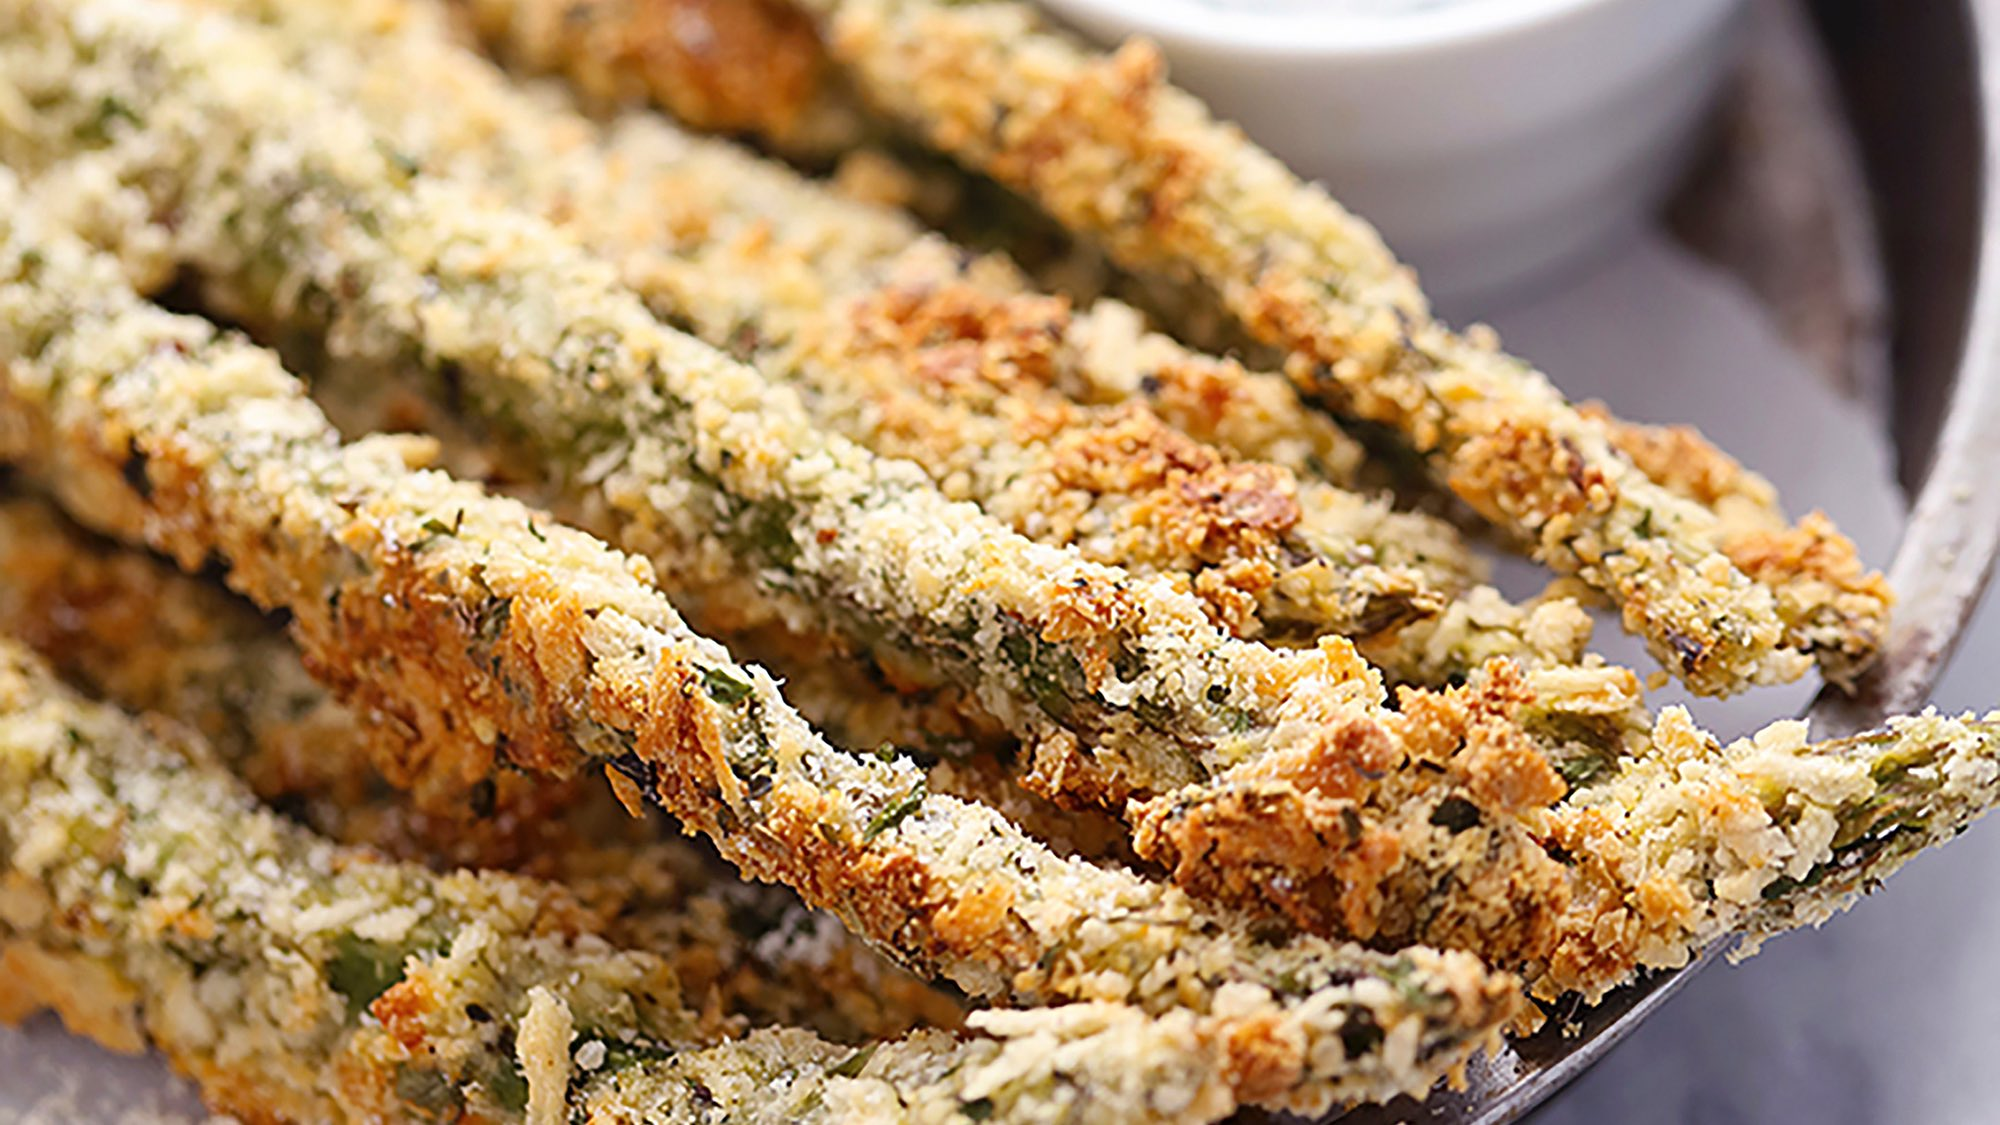 parmesan-herb-asparagus-fries-with-greek-yogurt-ranch-dip.jpg